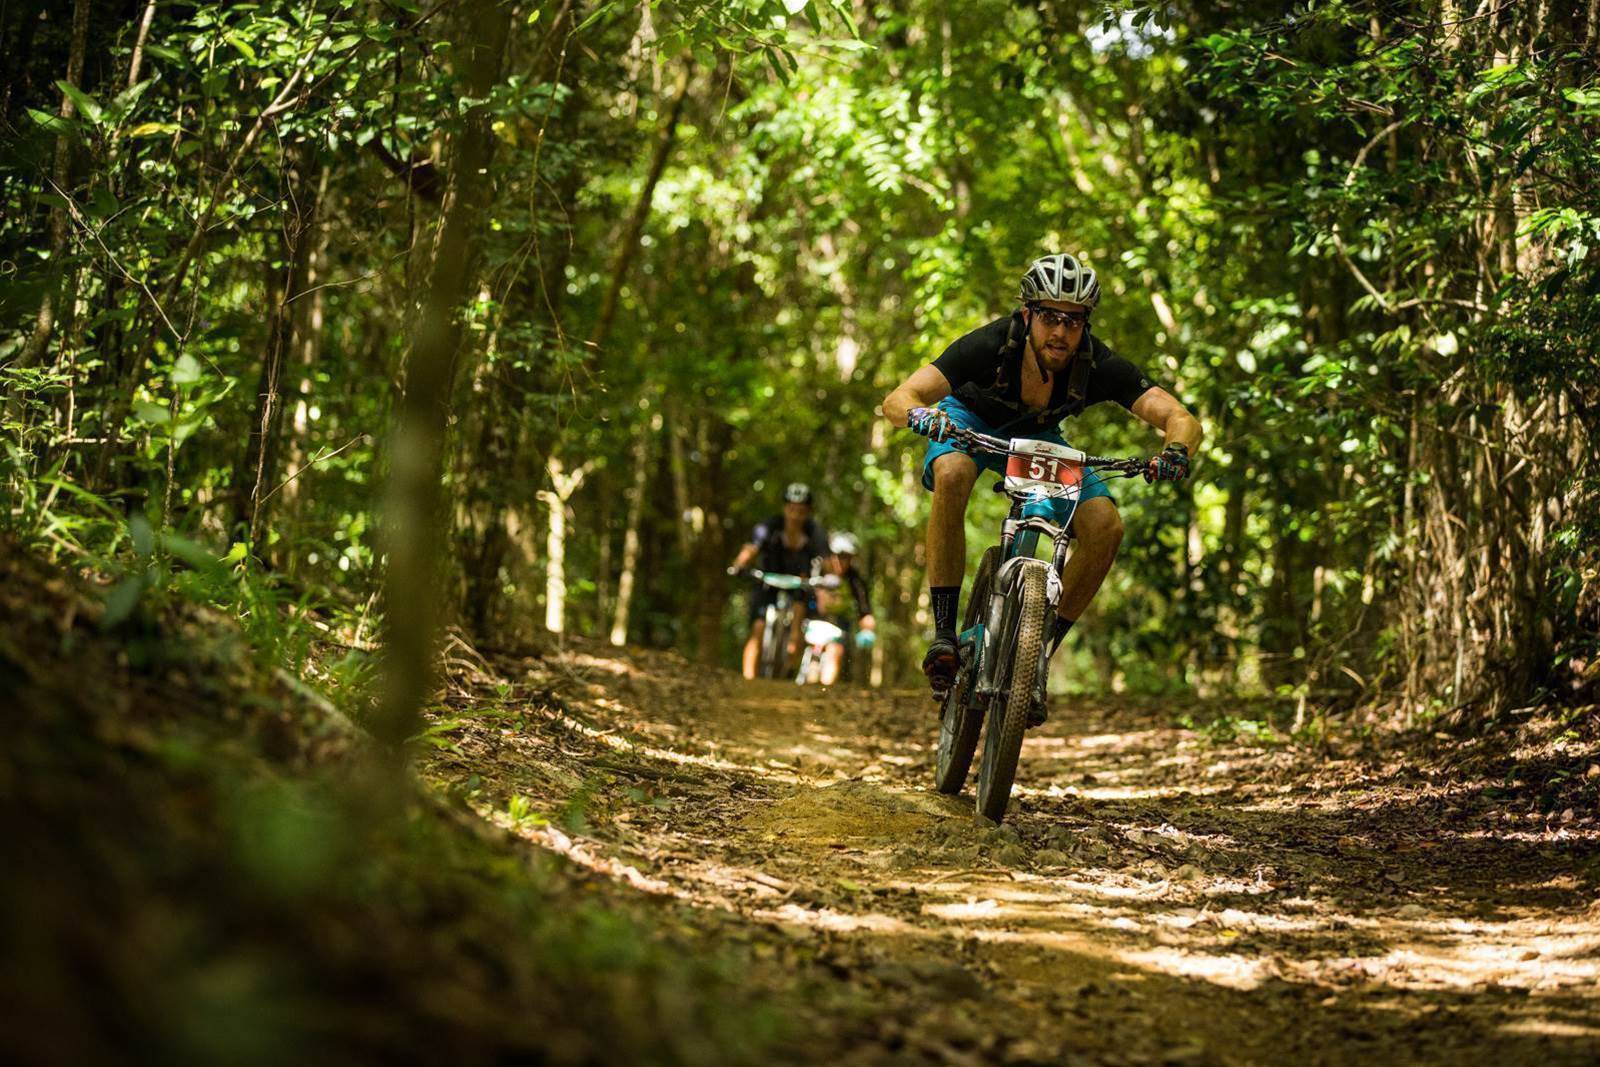 Reef to Reef MTB: Australia's newest mountain bike race